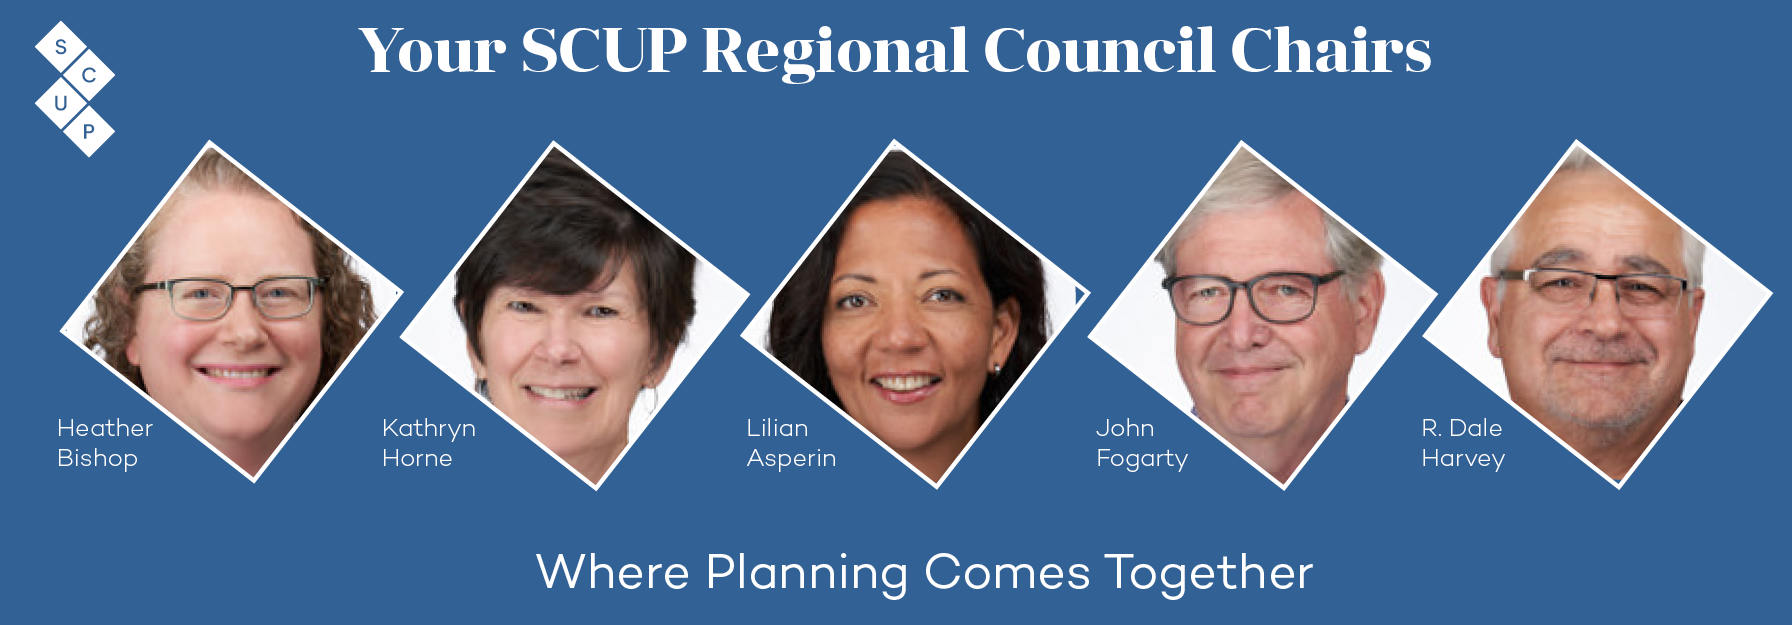 SCUP Regional Council Chairs 2019